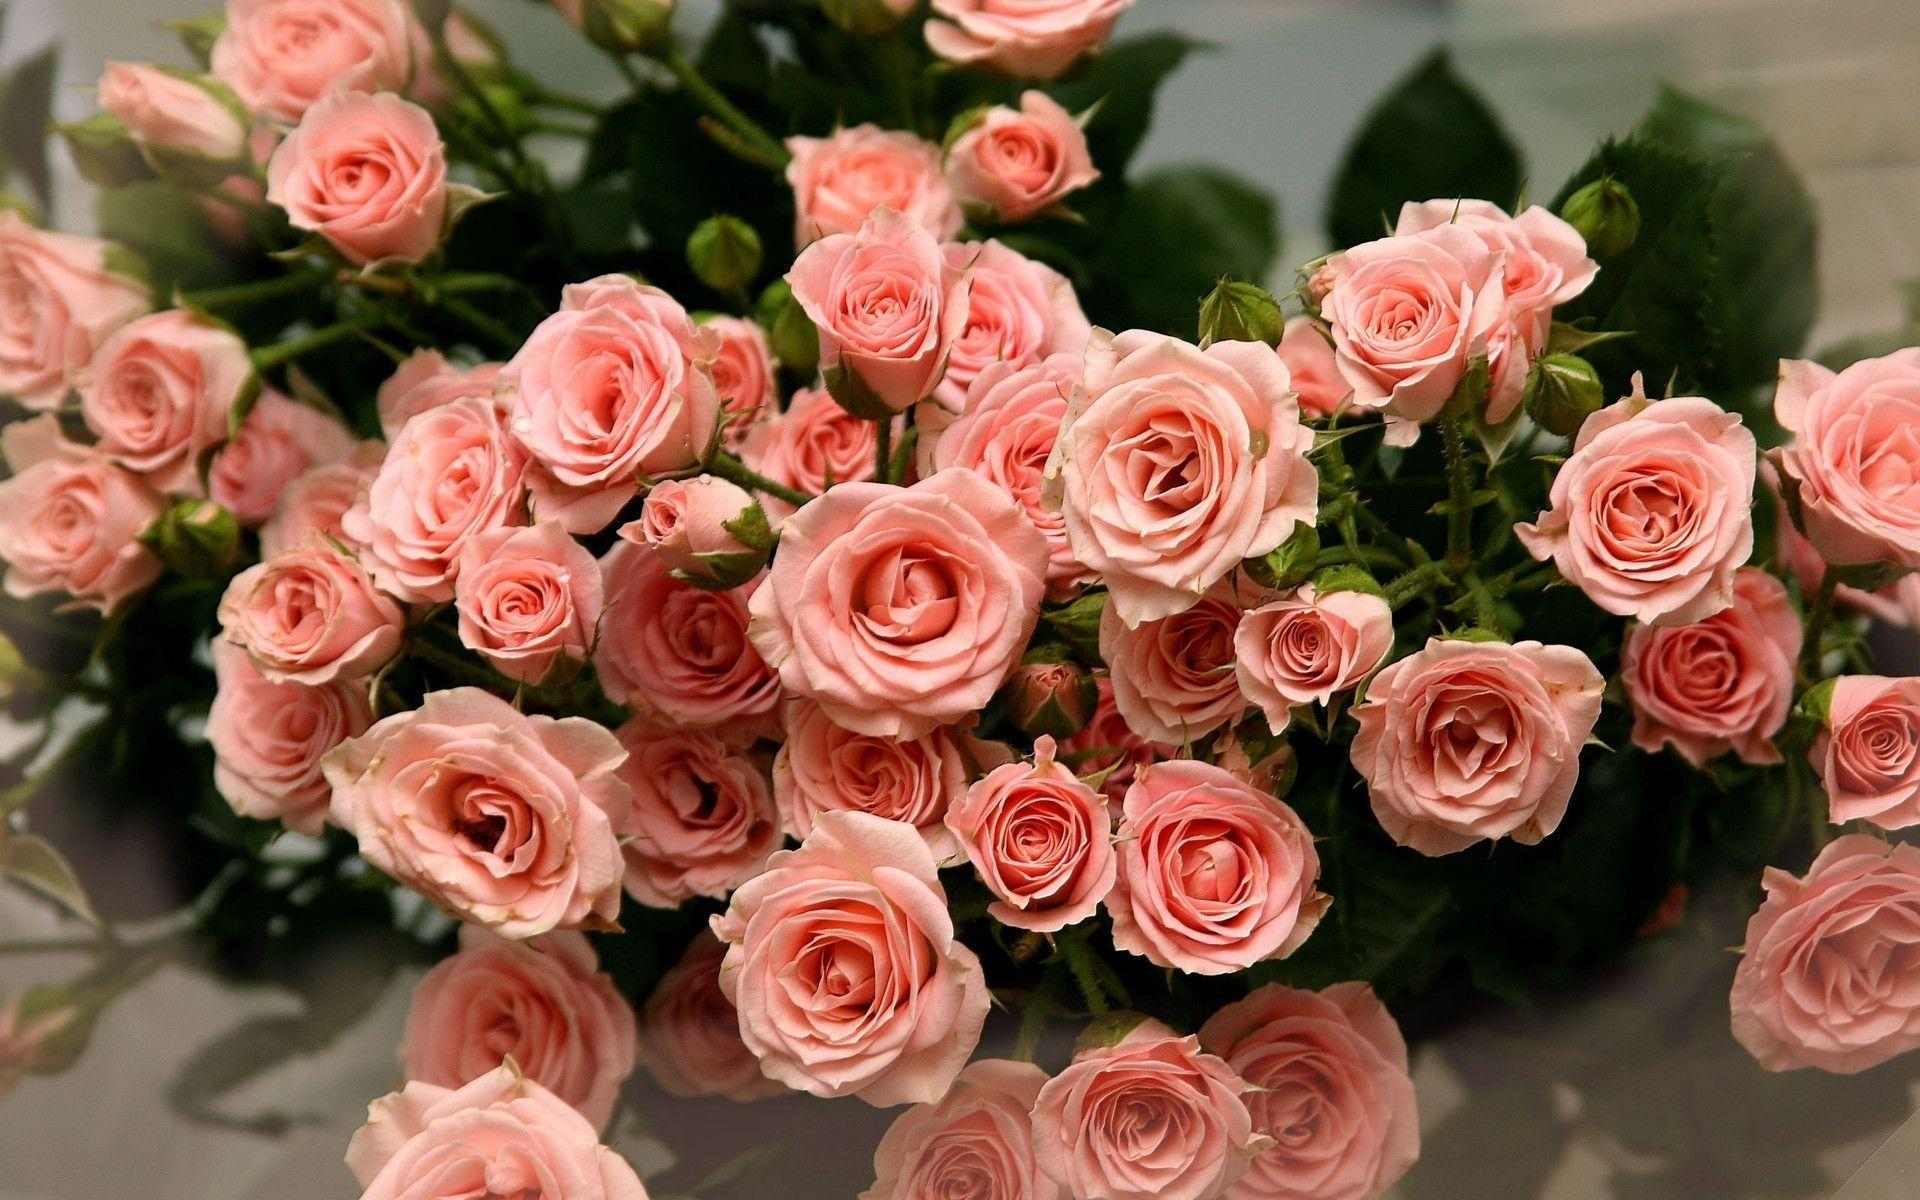 Aesthetic Pink Roses Wallpapers - Wallpaper Cave